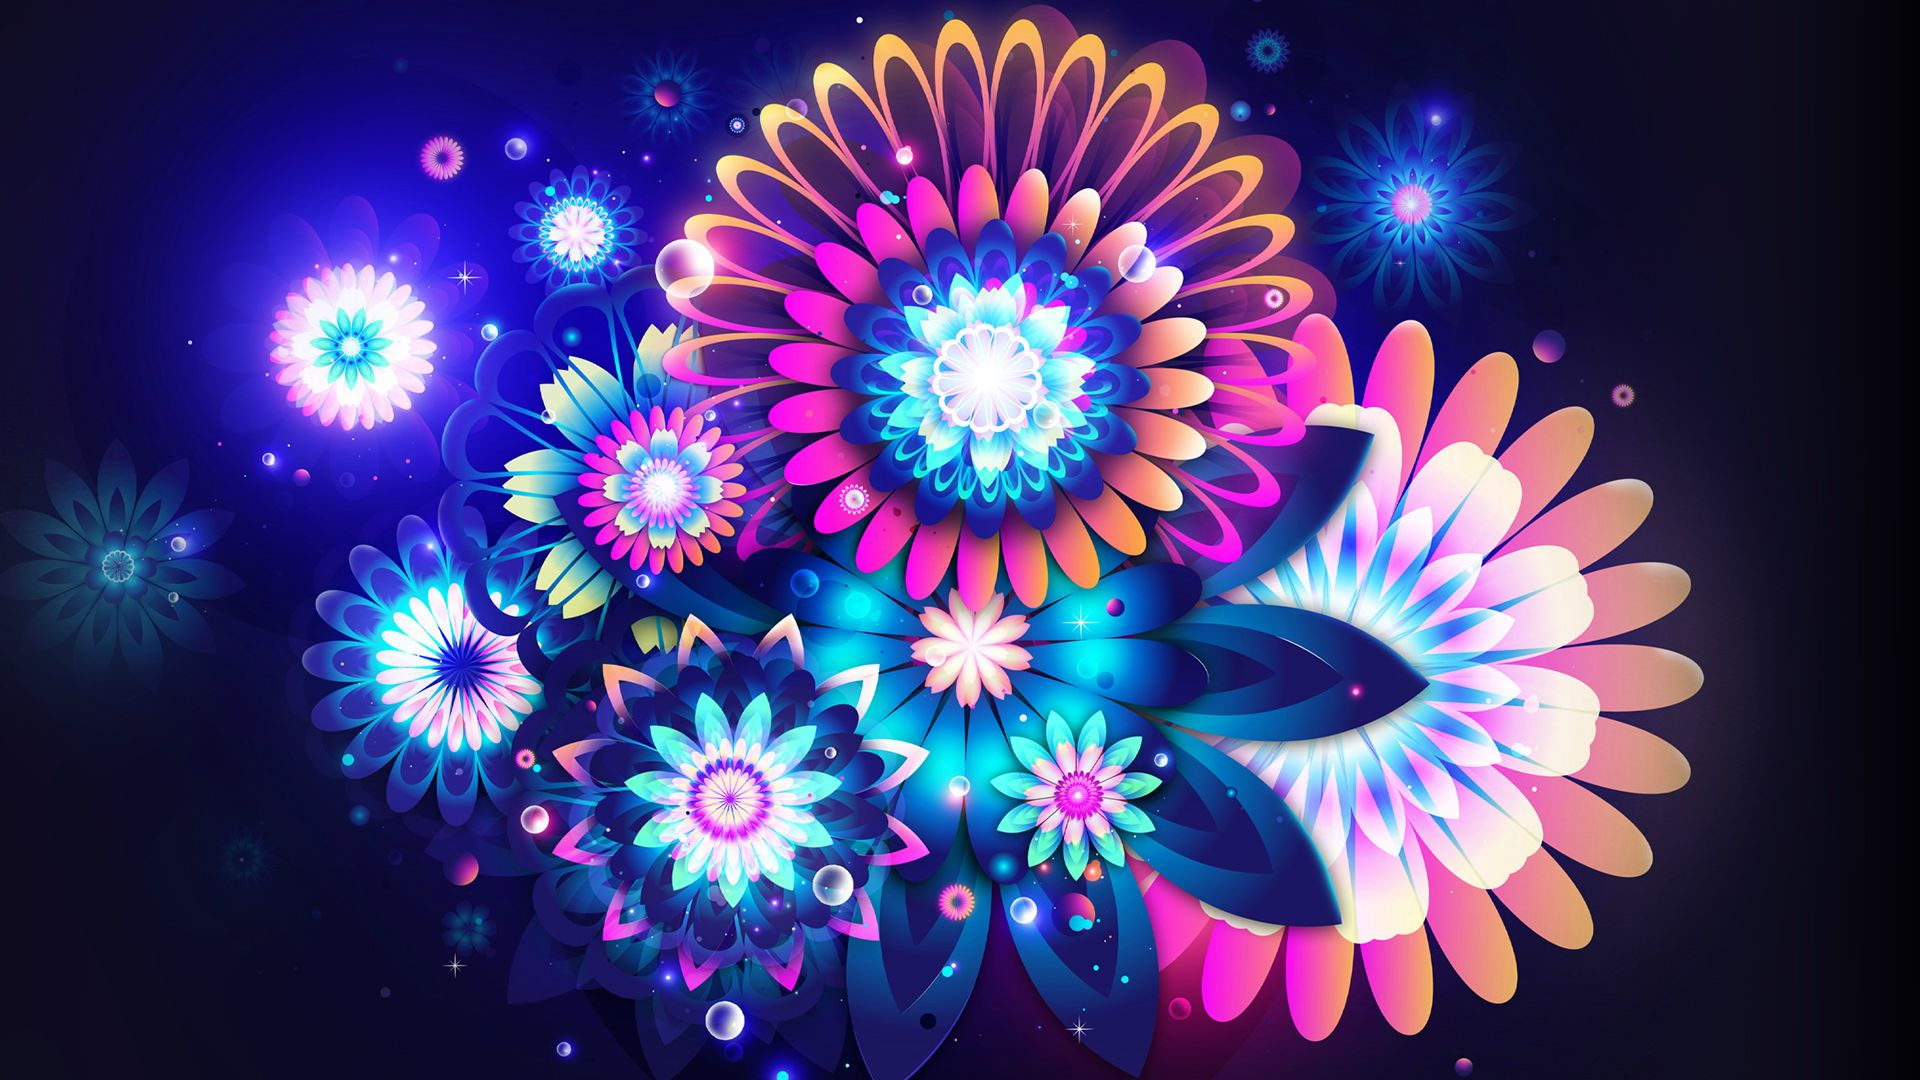 flowers neon color wallpaper background 1920x1080